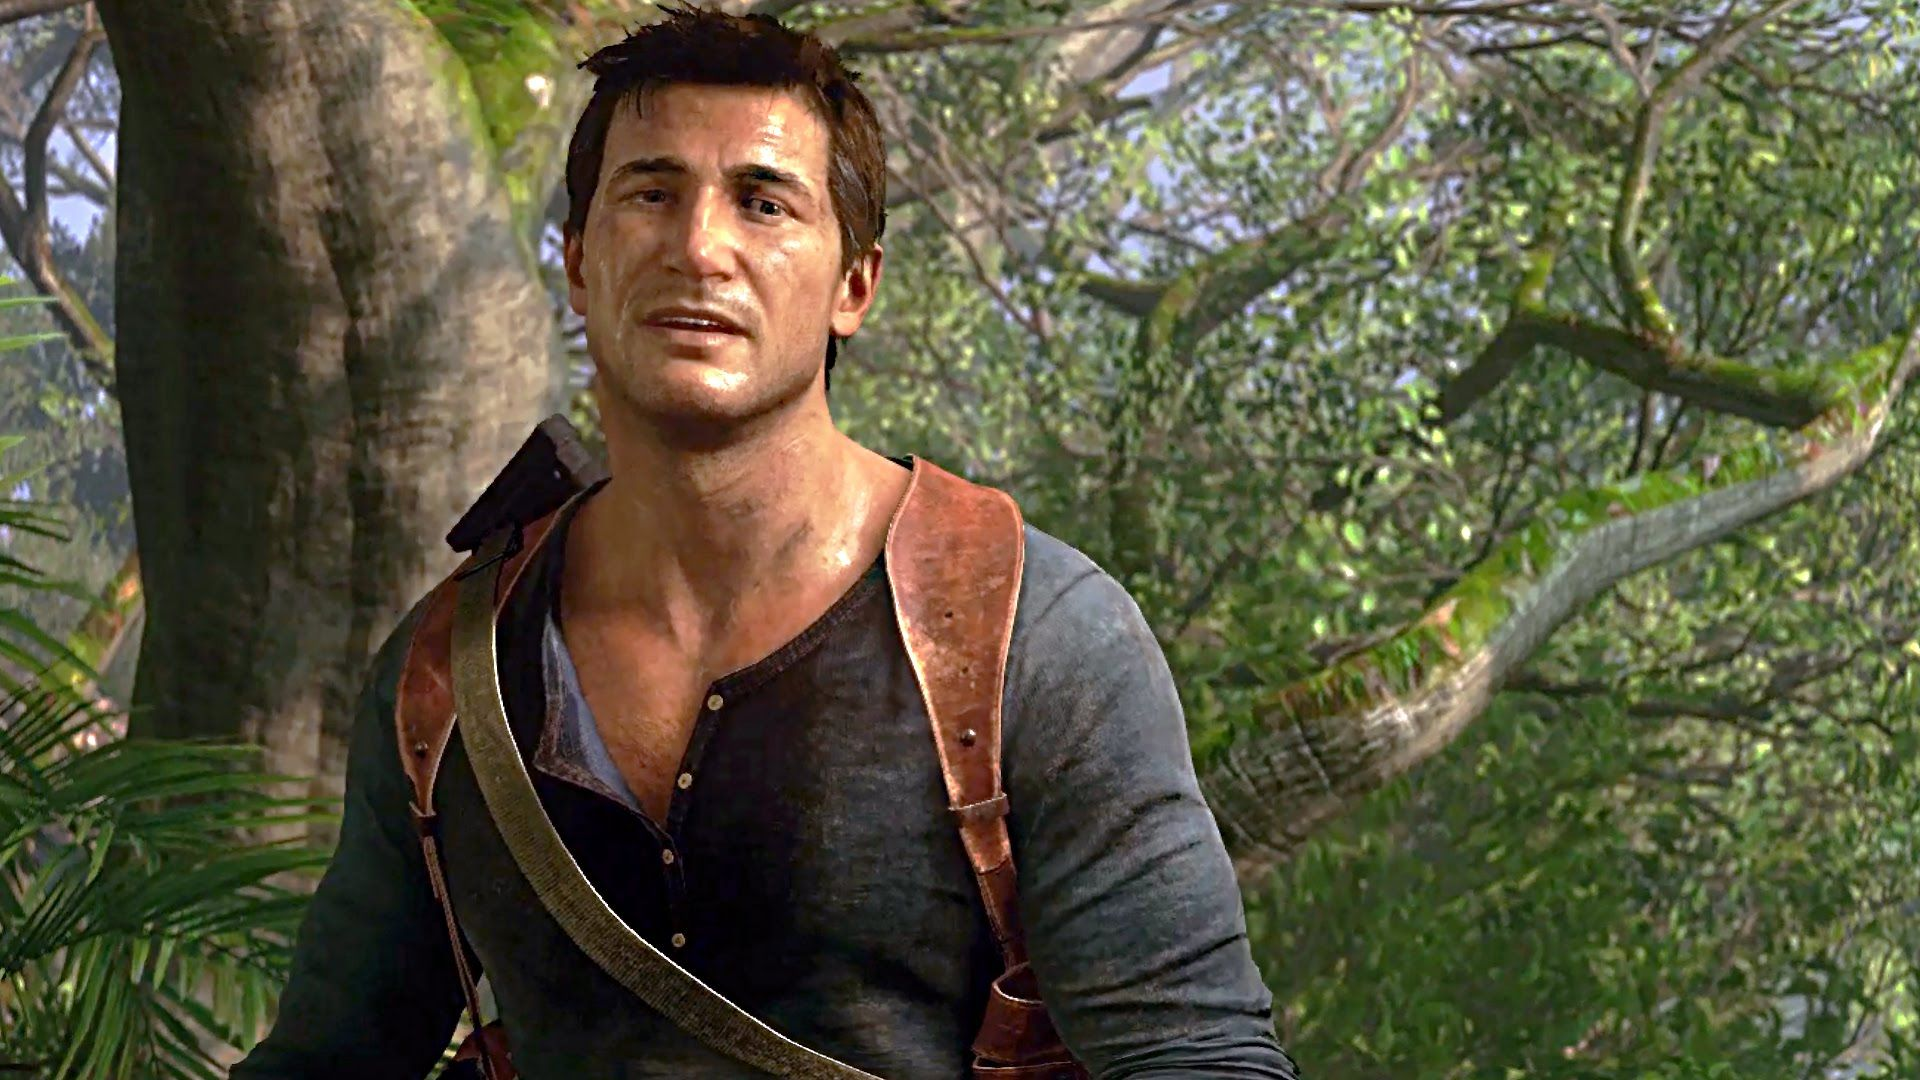 Uncharted 4 Gameplay 15 Minutes Hd 1080p Ps4 Uncharted Tomb Raider Movie Hero